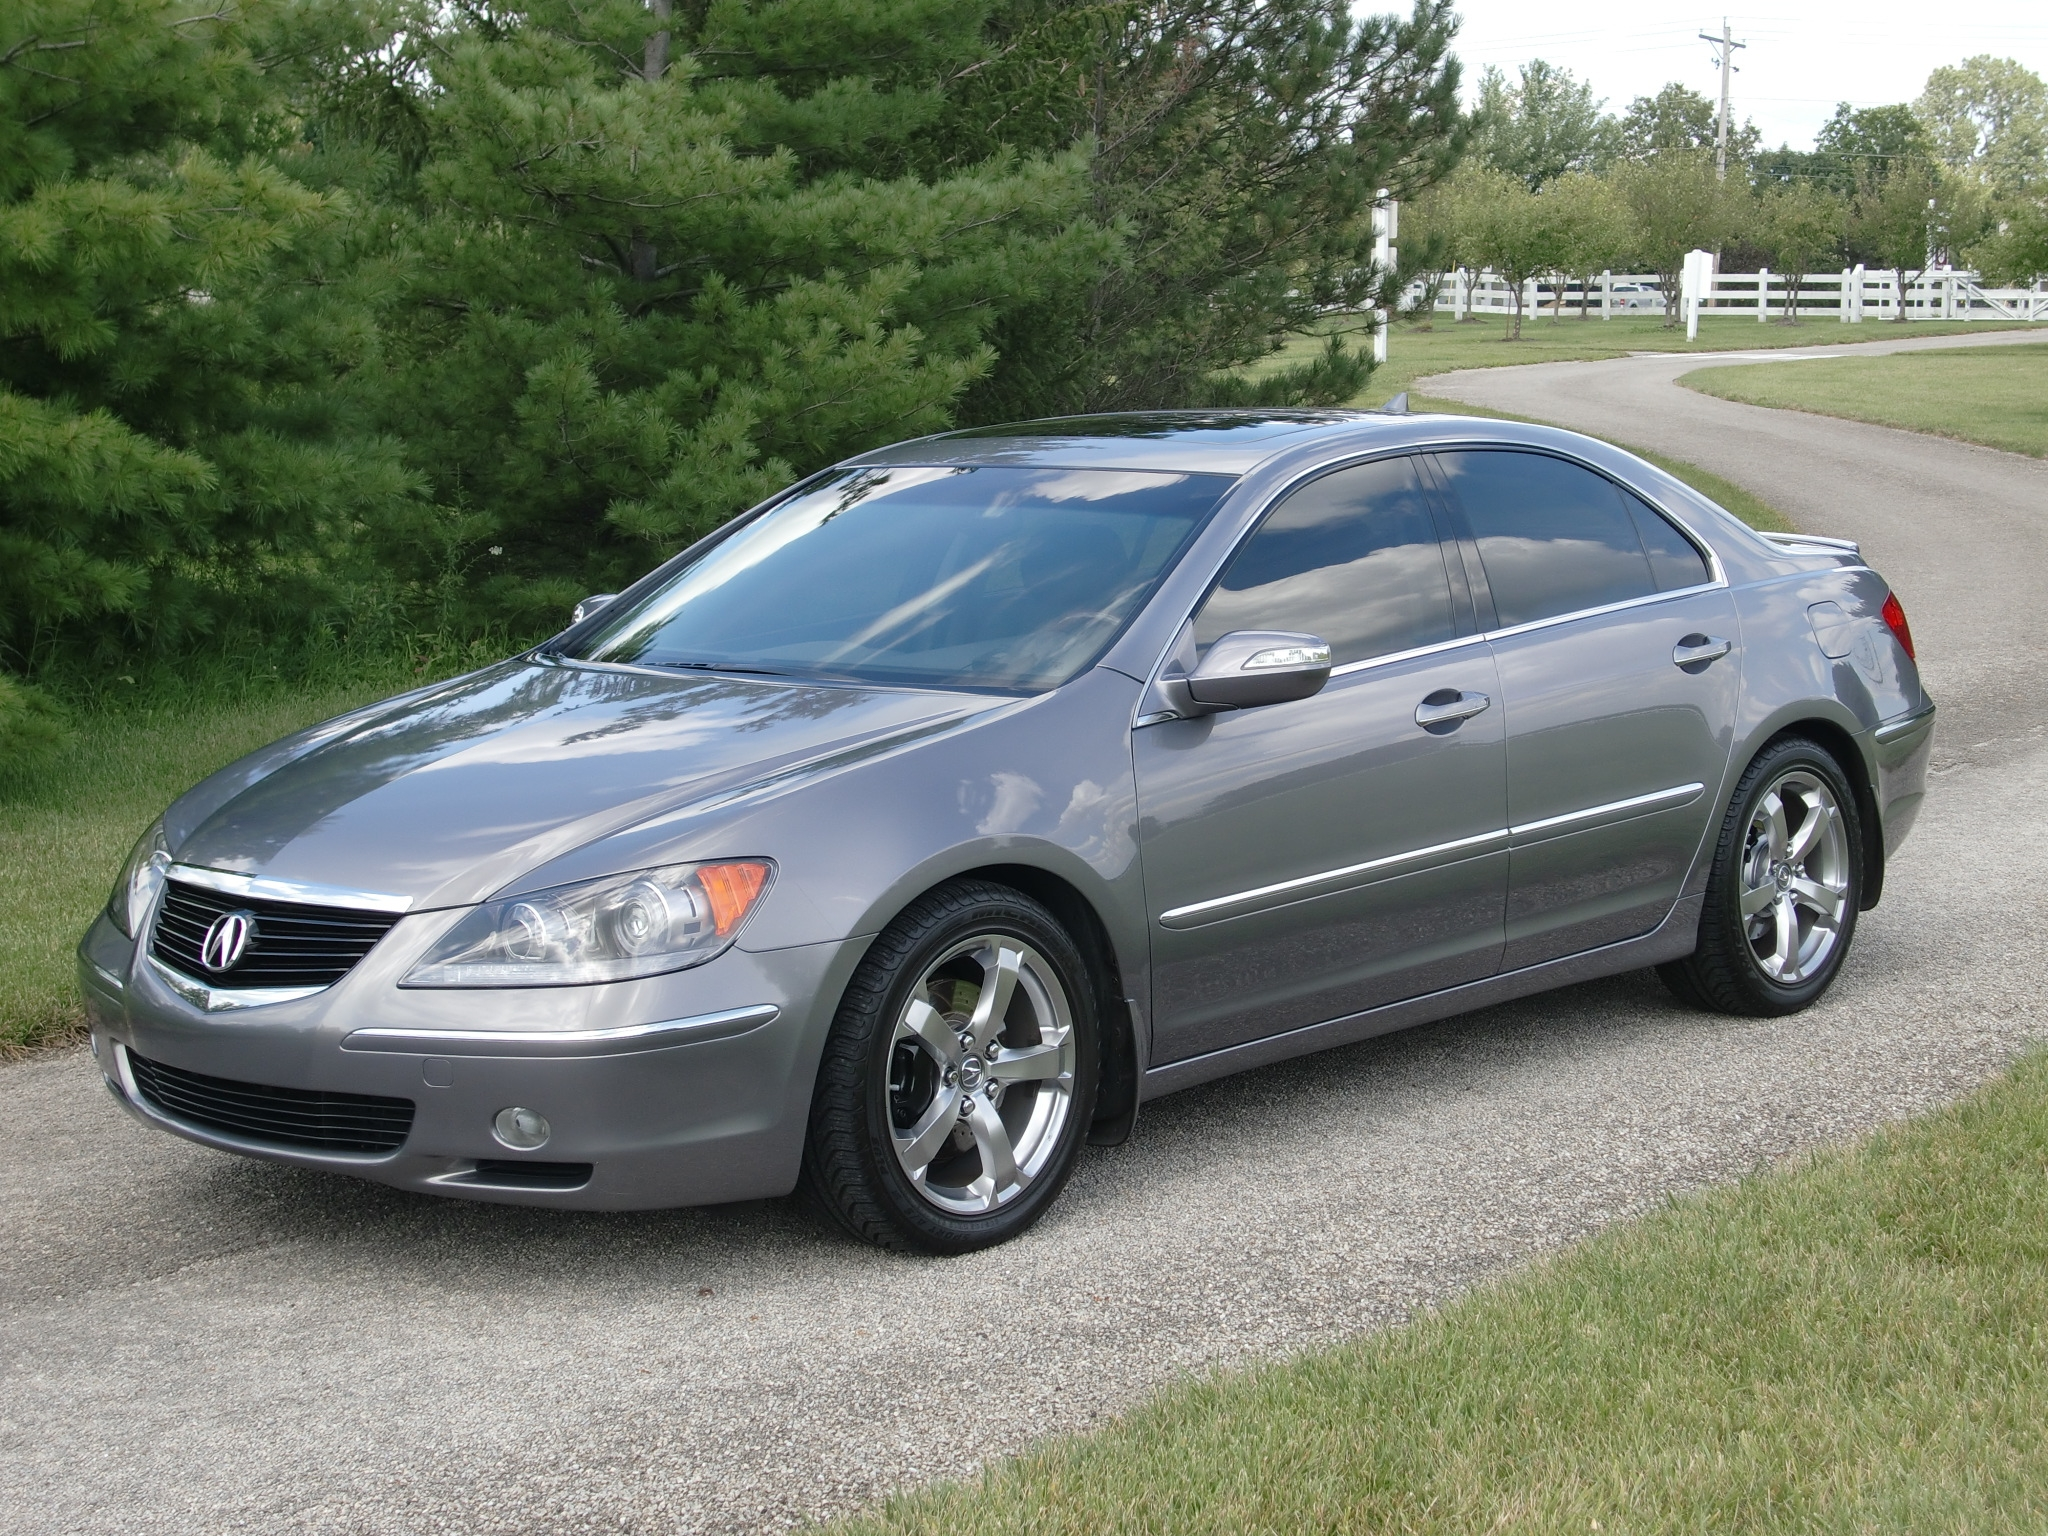 2006 Acura Rl Photos Informations Articles Wiring Diagram For 1997 6